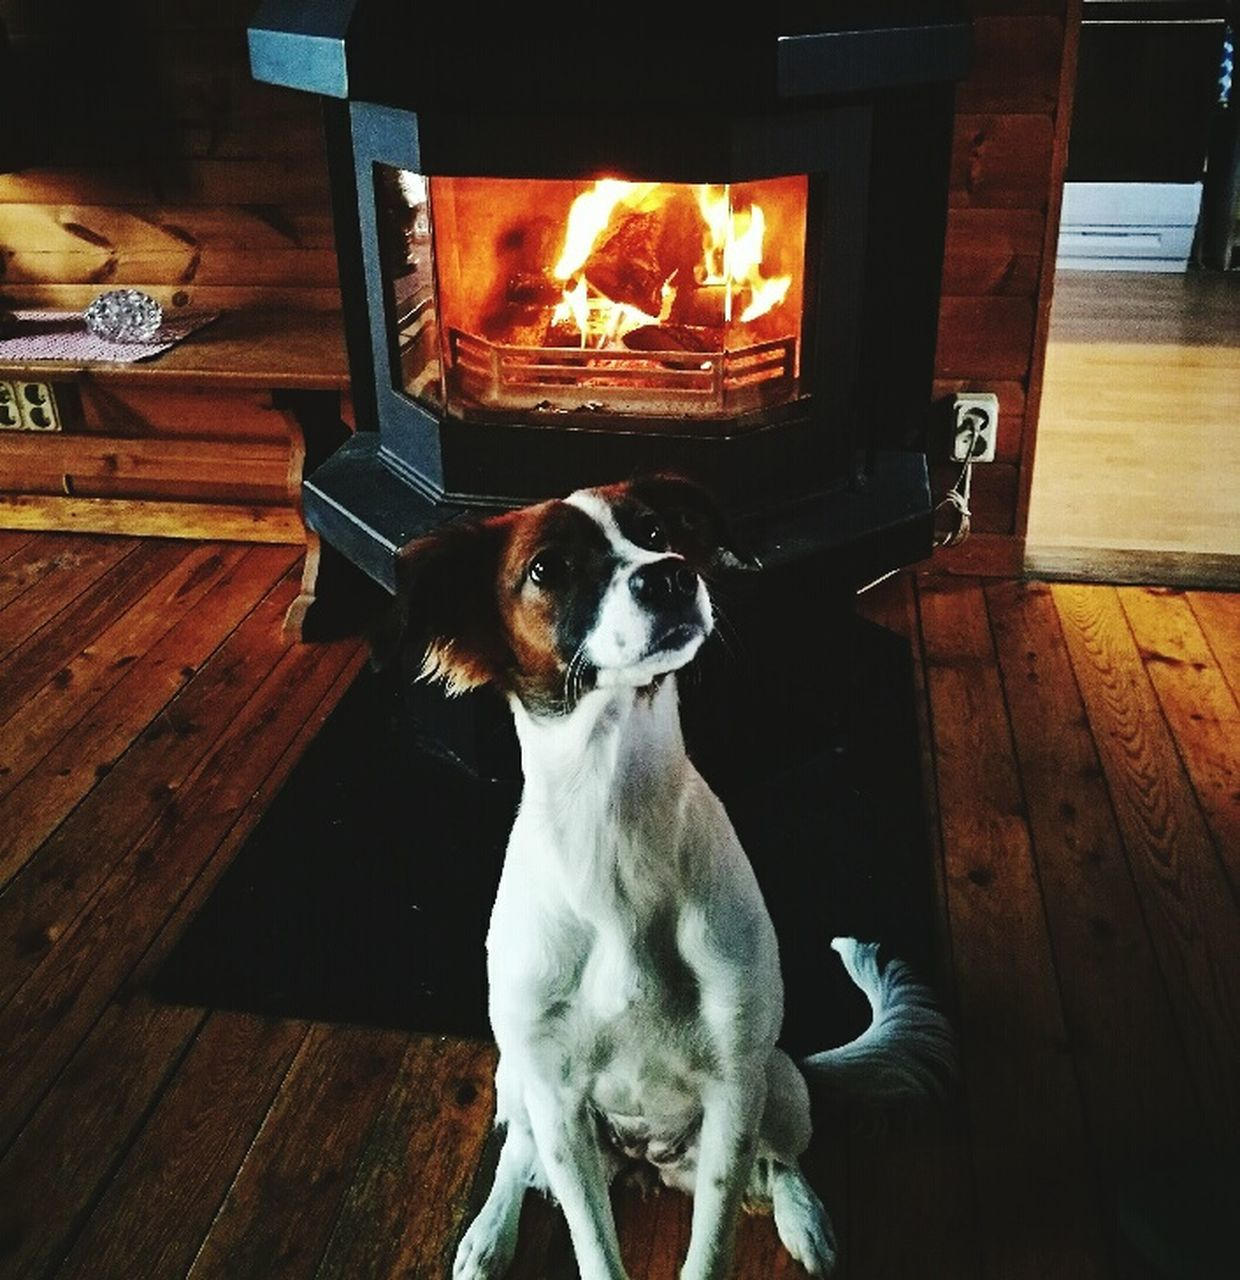 fireplace, dog, flame, pets, indoors, domestic animals, burning, home interior, one animal, animal themes, no people, wood - material, heat - temperature, mammal, sitting, full length, close-up, day